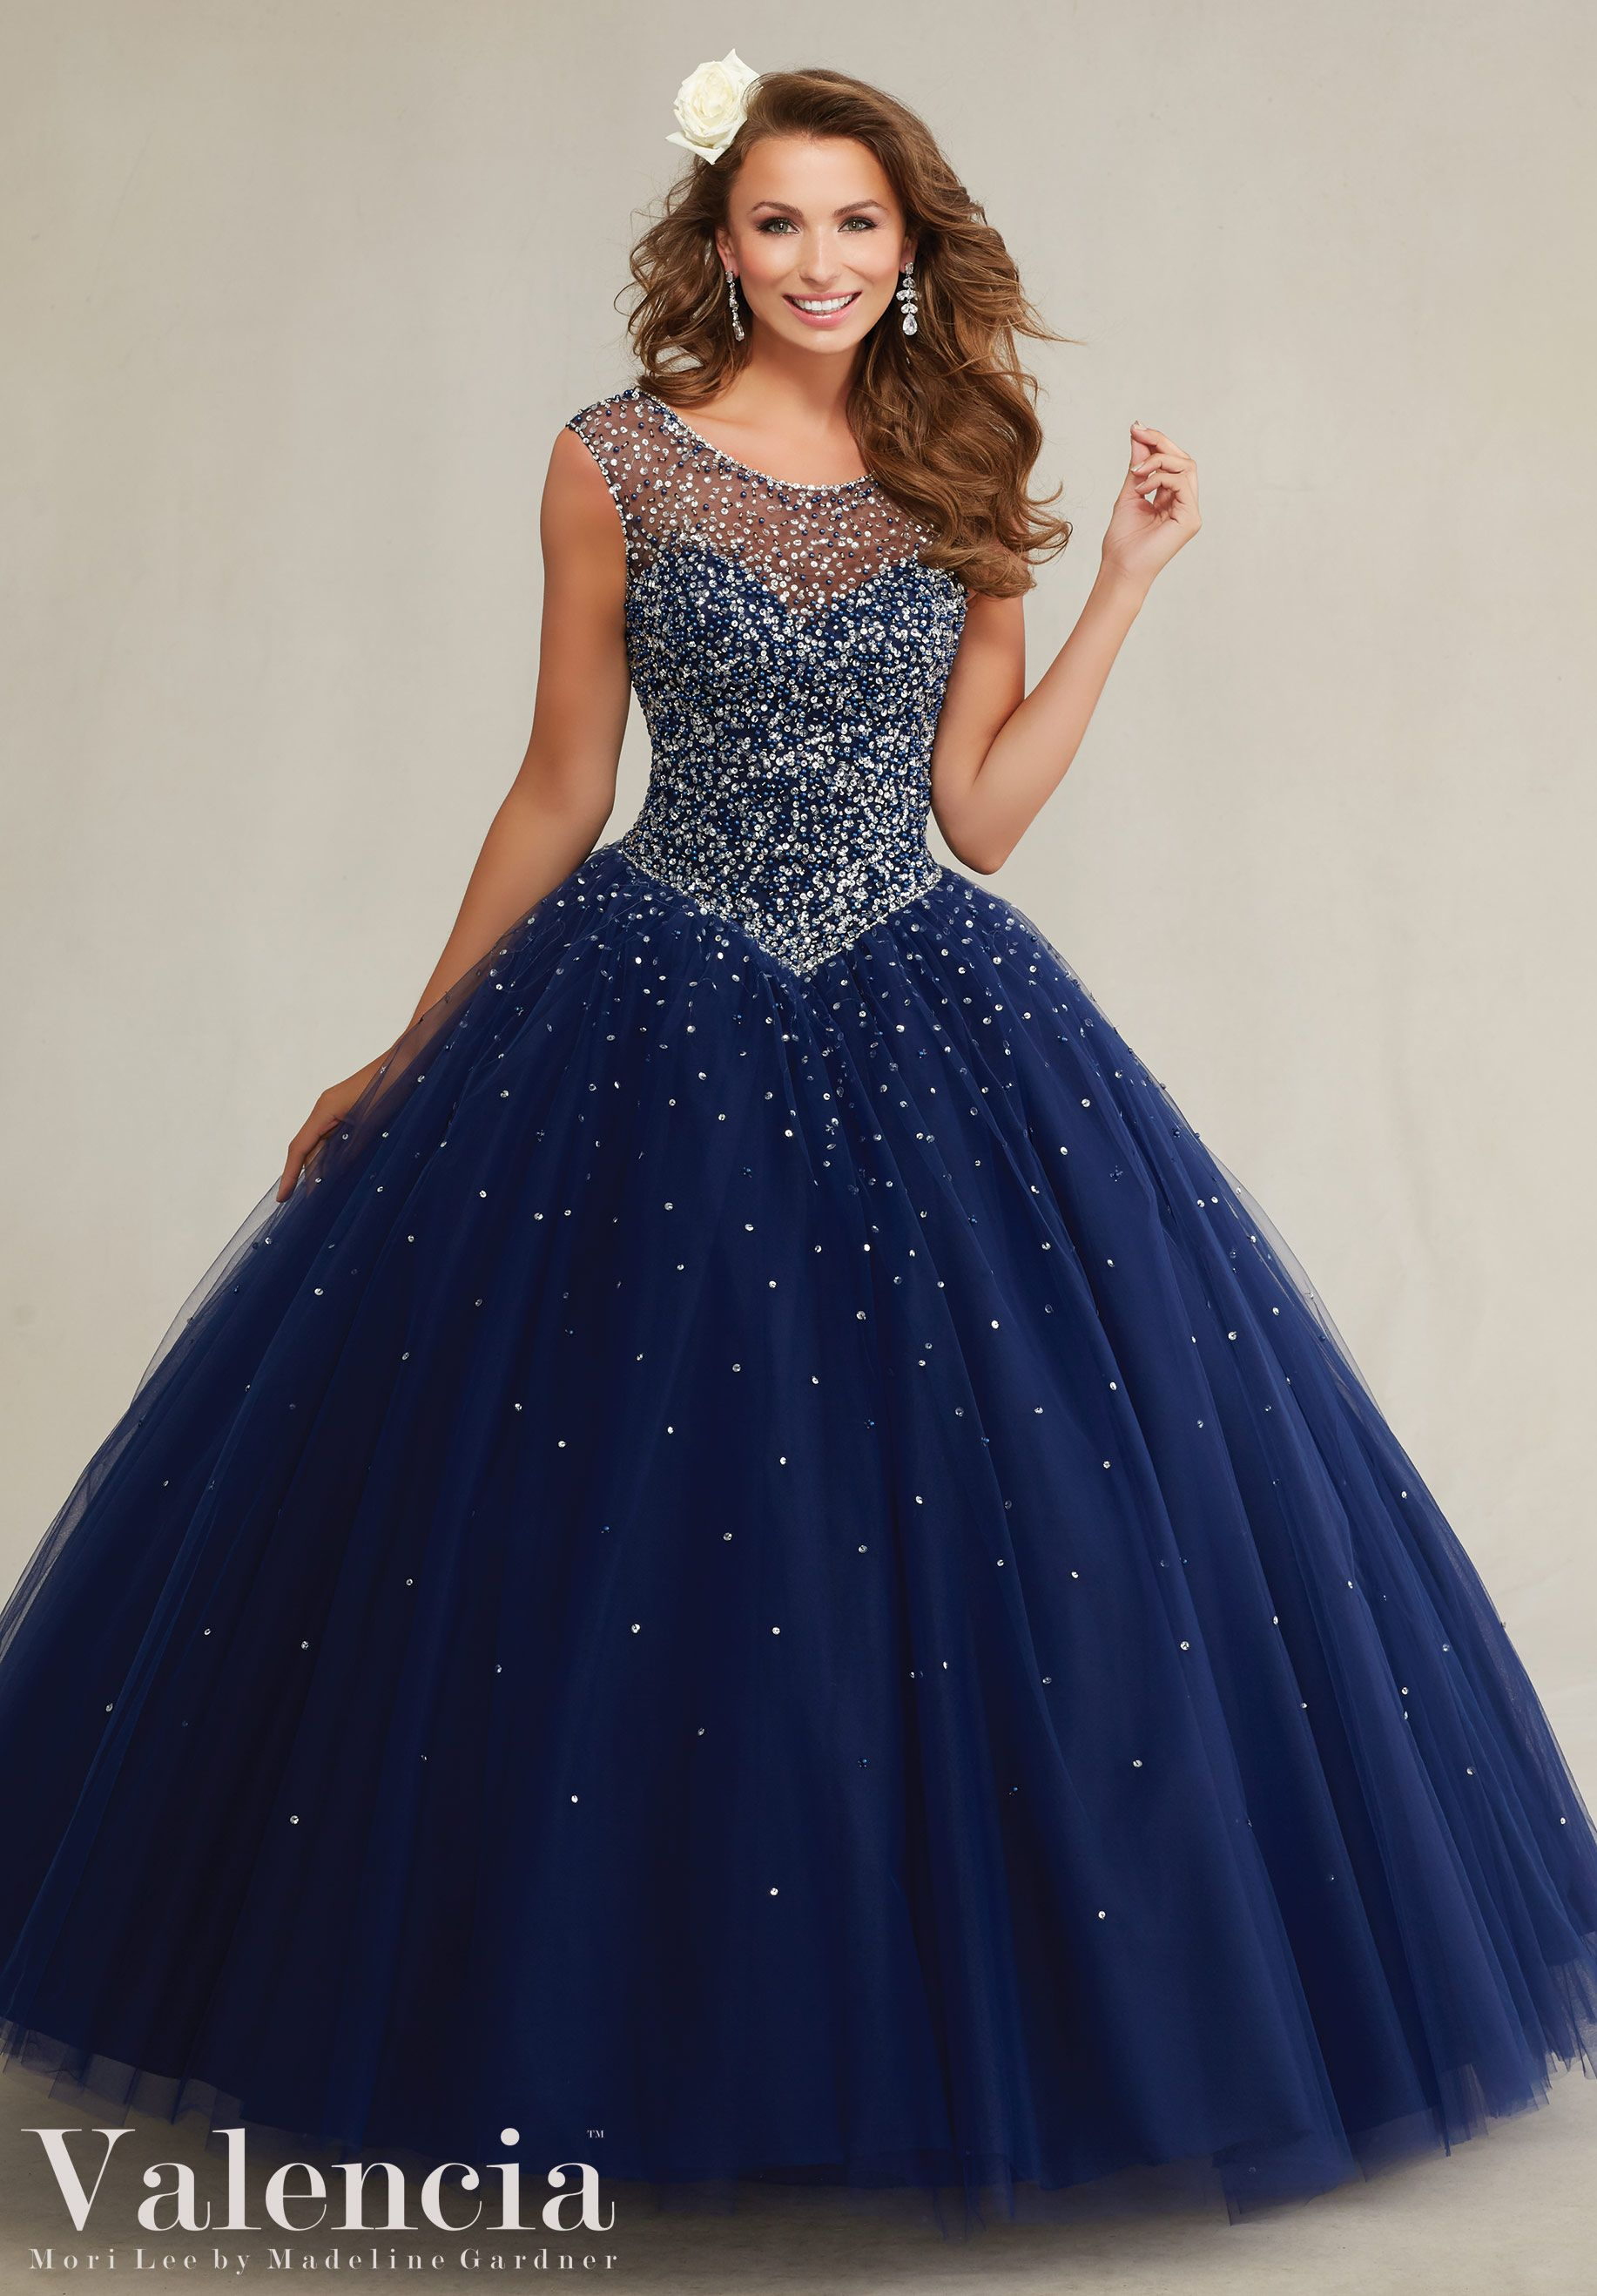 Quince Dresses 2014 Summer